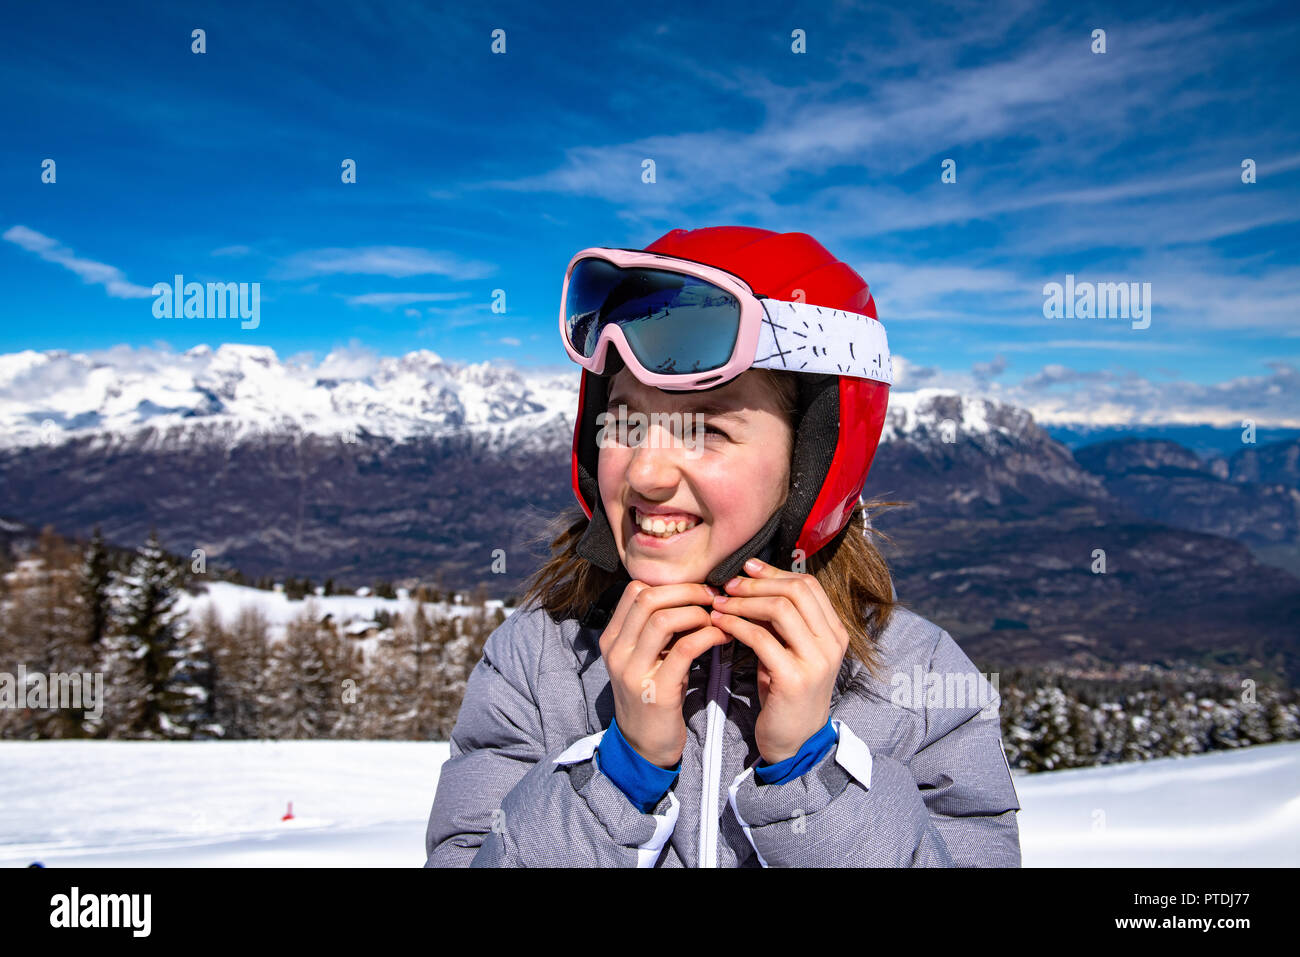 Little girl on the ski slopes with helmet and ski goggles - Stock Image